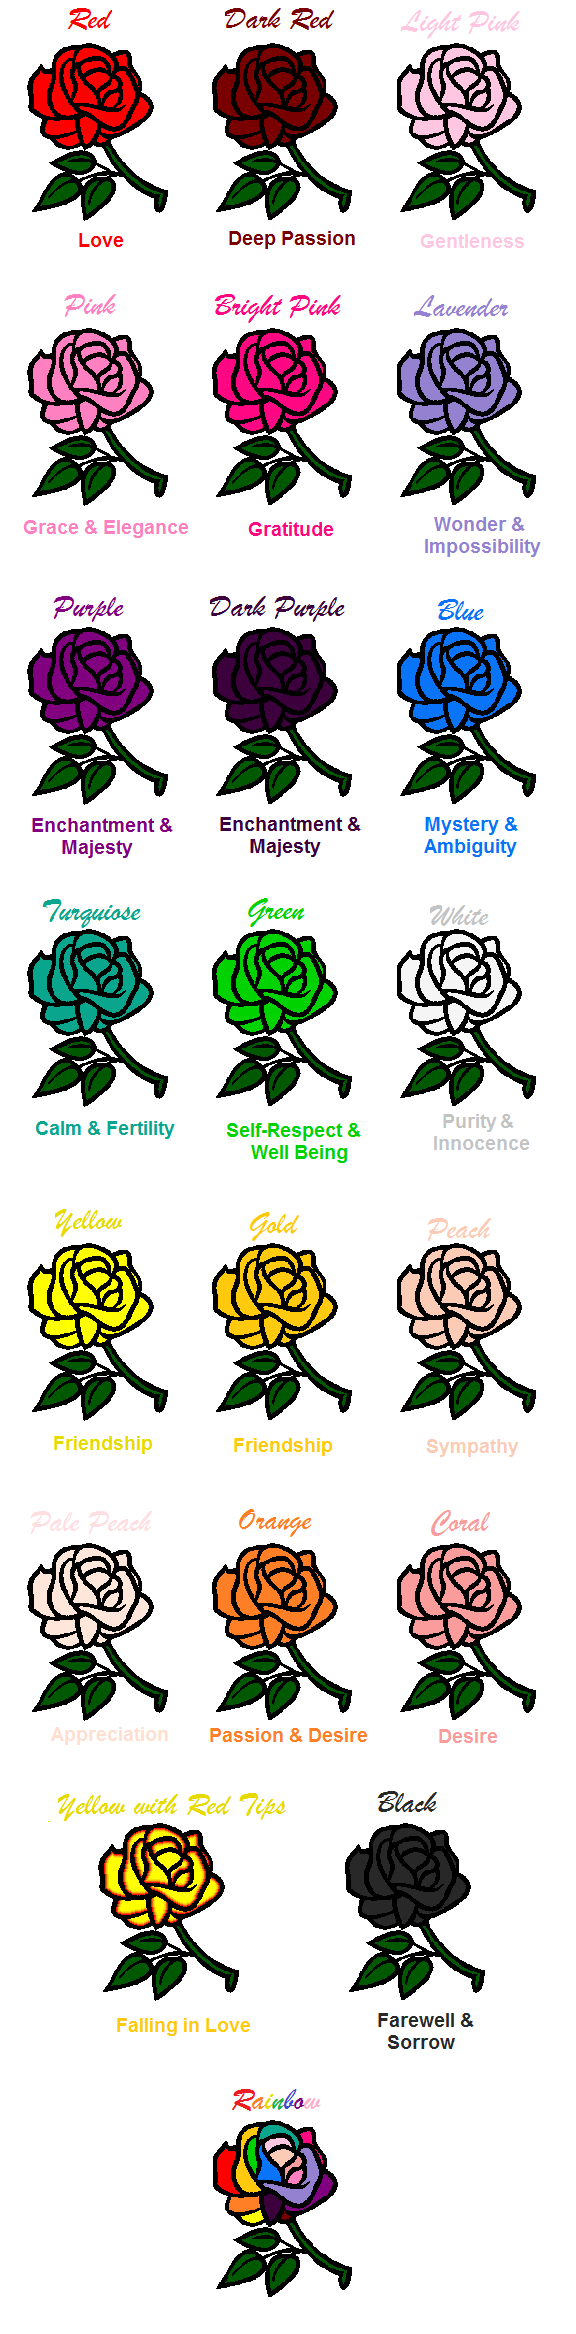 Rose Color Meanings By Arianatheechidnaiantart On